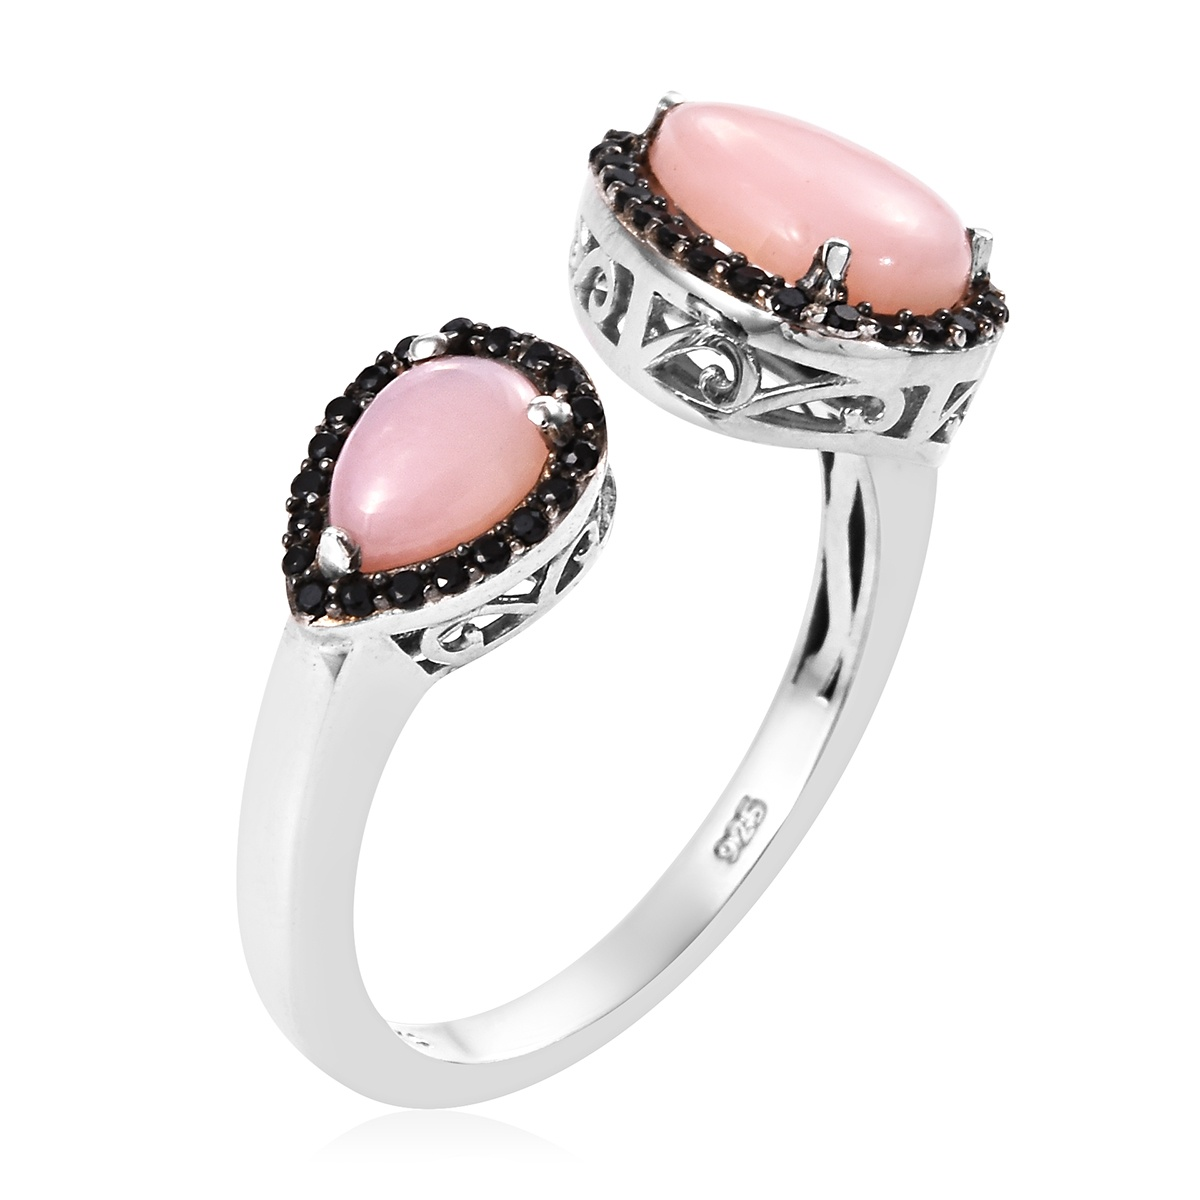 Peruvian Pink Opal, Thai Black Spinel Ring in Platinum Over Sterling Silver (Size 6.0) 2.46 ctw